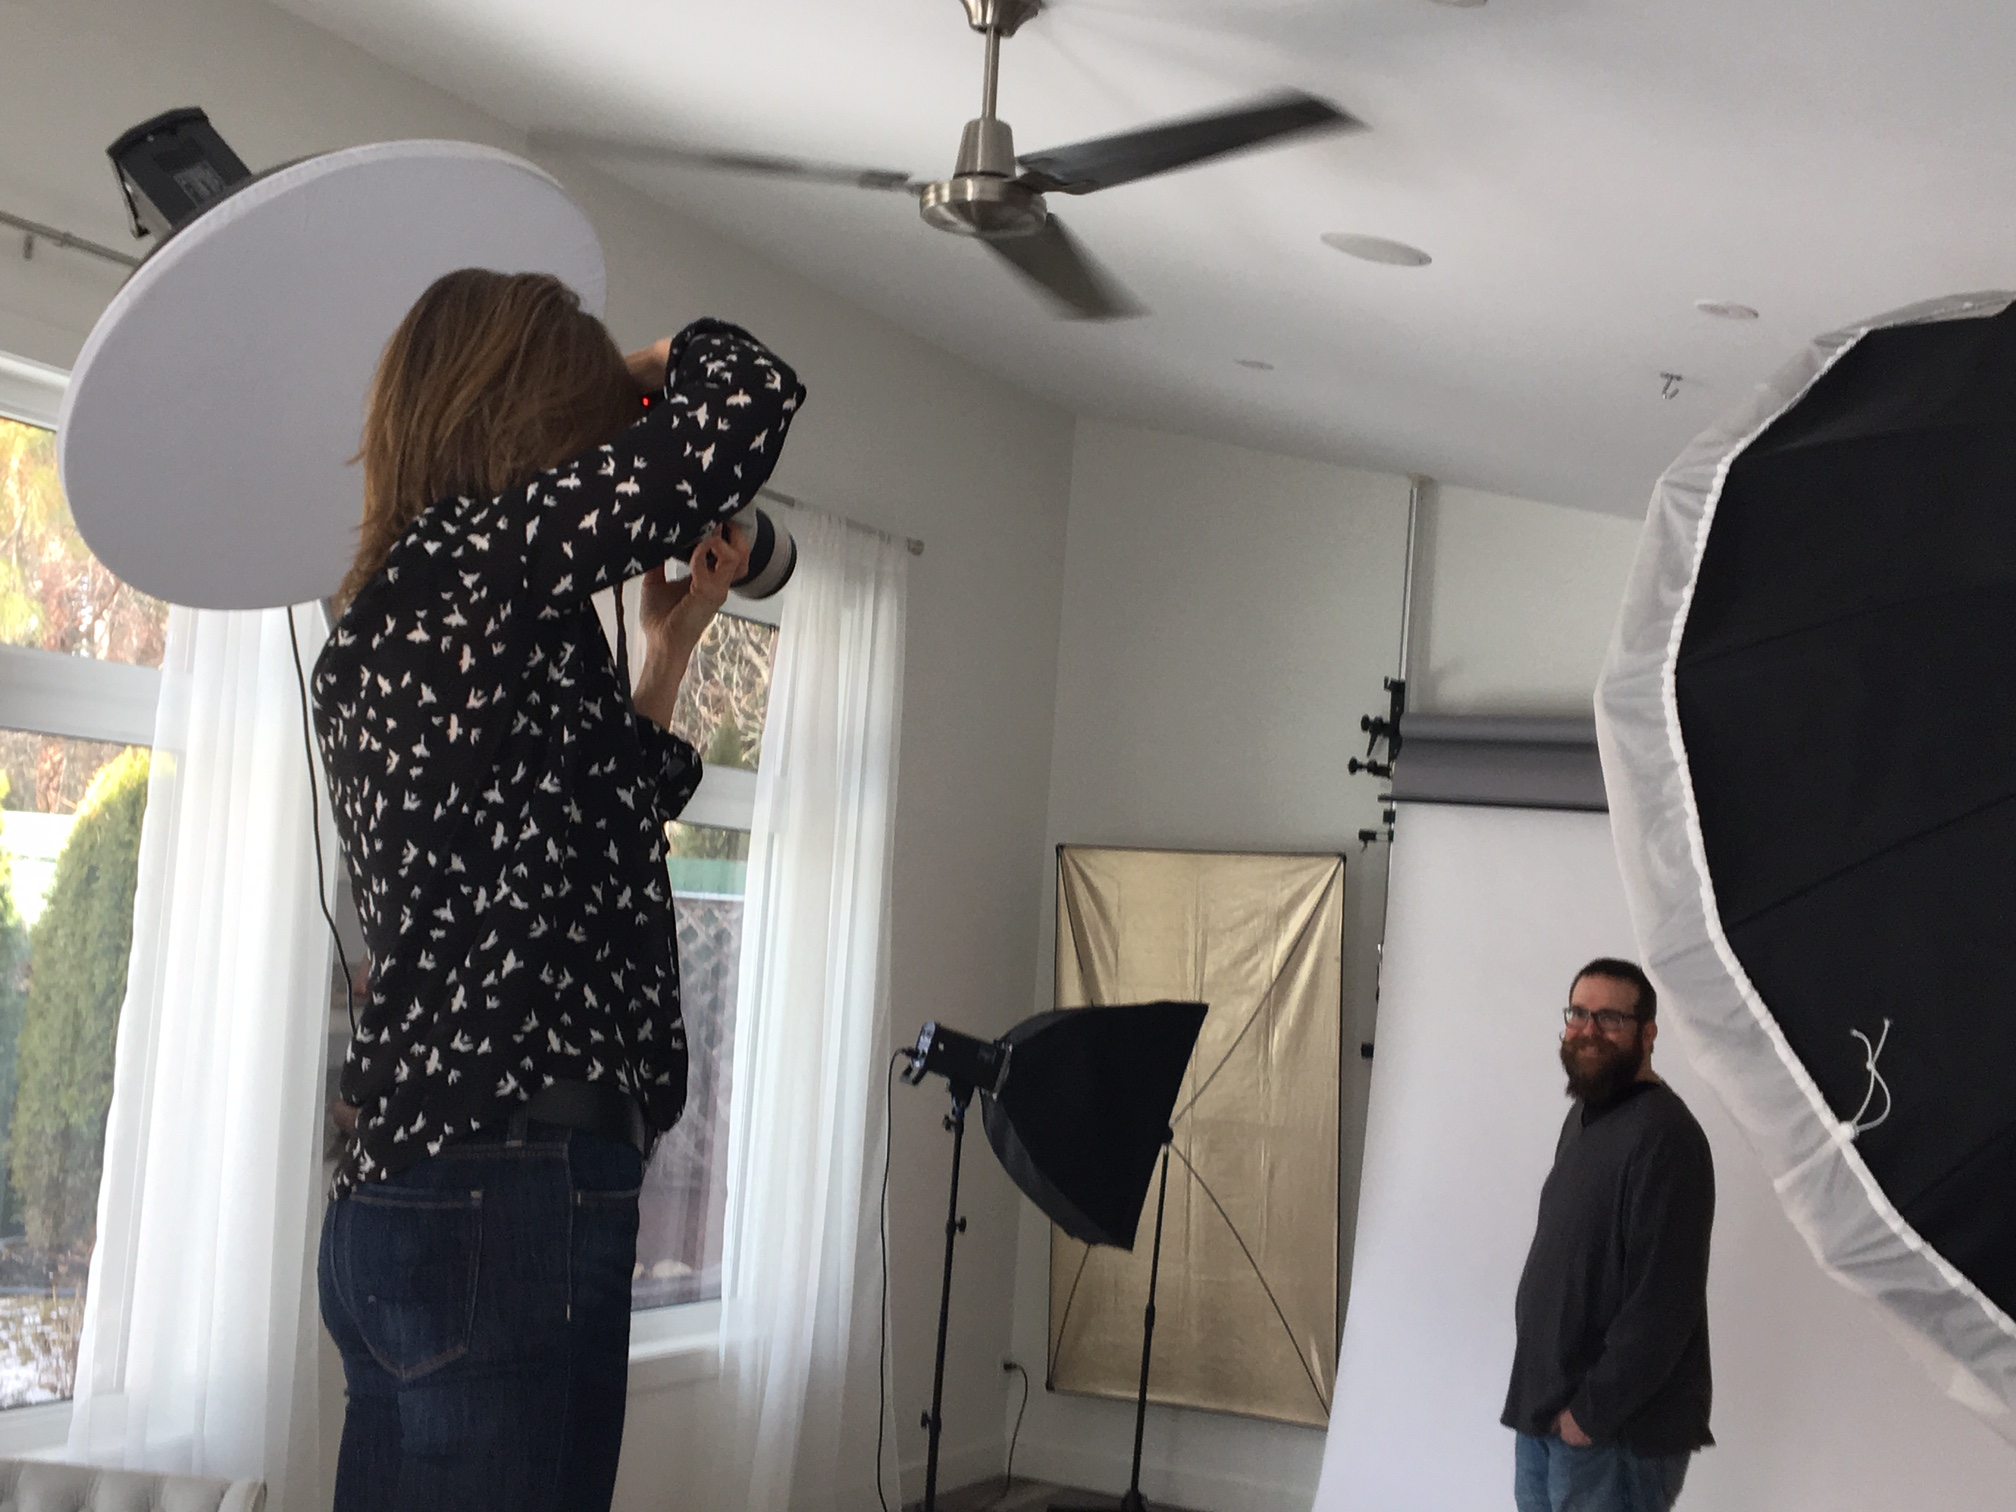 female photographer taking business headshot portrait photos in photography studio with windows